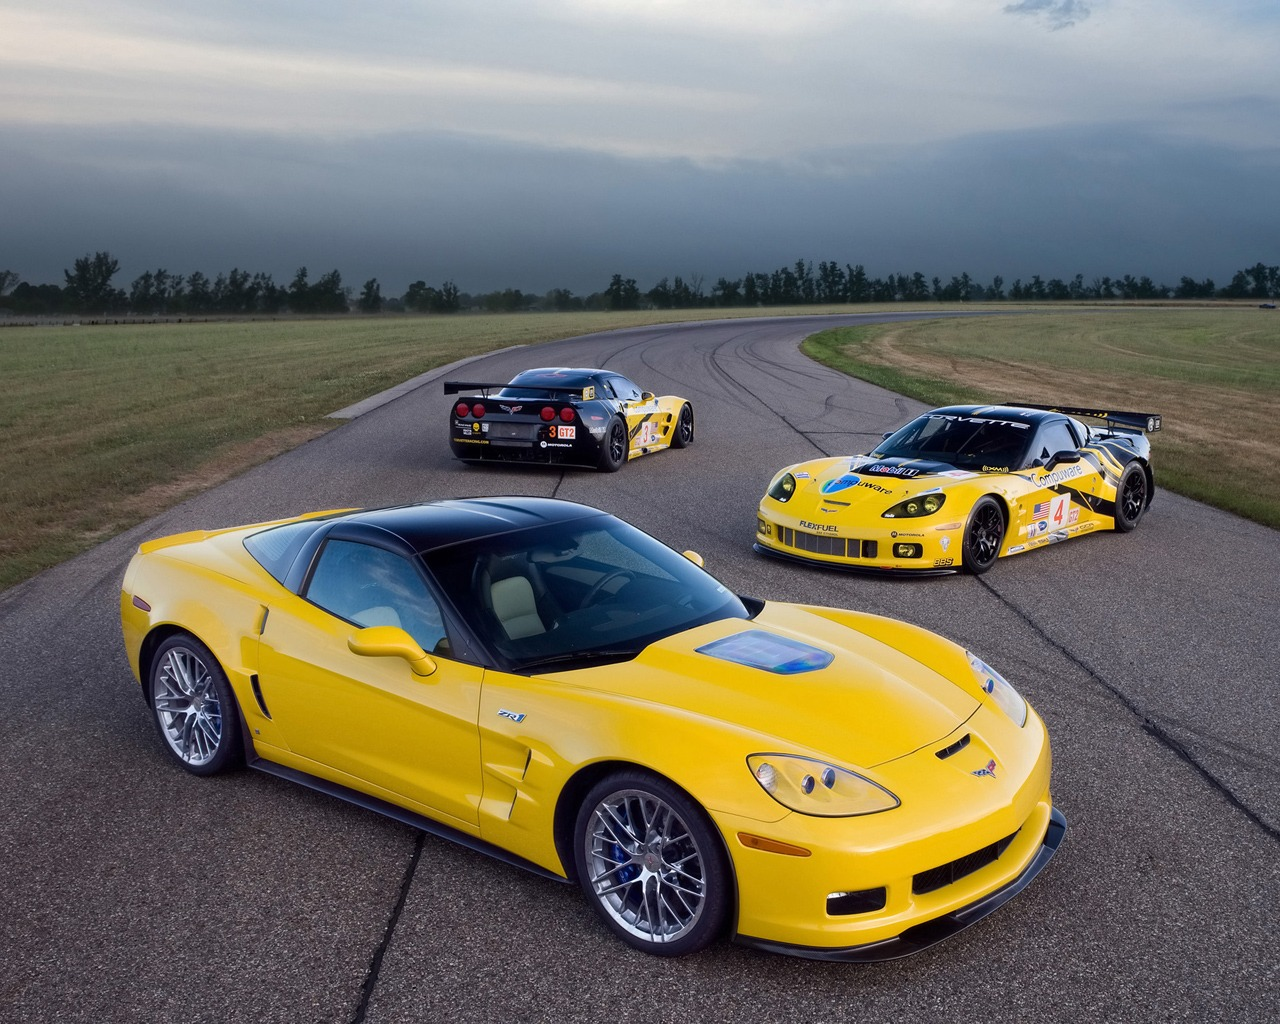 Chevrolet corvette c6r gt2 wallpaper chevrolet cars wallpaper 2184 additionally 7C 7Cjootix   7Cupload 7CDeskto allpapers 7Ccache 7CMuscle Cars Camero Mustang Dodge 1366x768 likewise Shelby Mustang Gt 1965 2011 likewise 1366x768 as well 2017 chevrolet camaro ss 2 Wallpapers. on 1366 768 muscle car chevrolet camaro ss